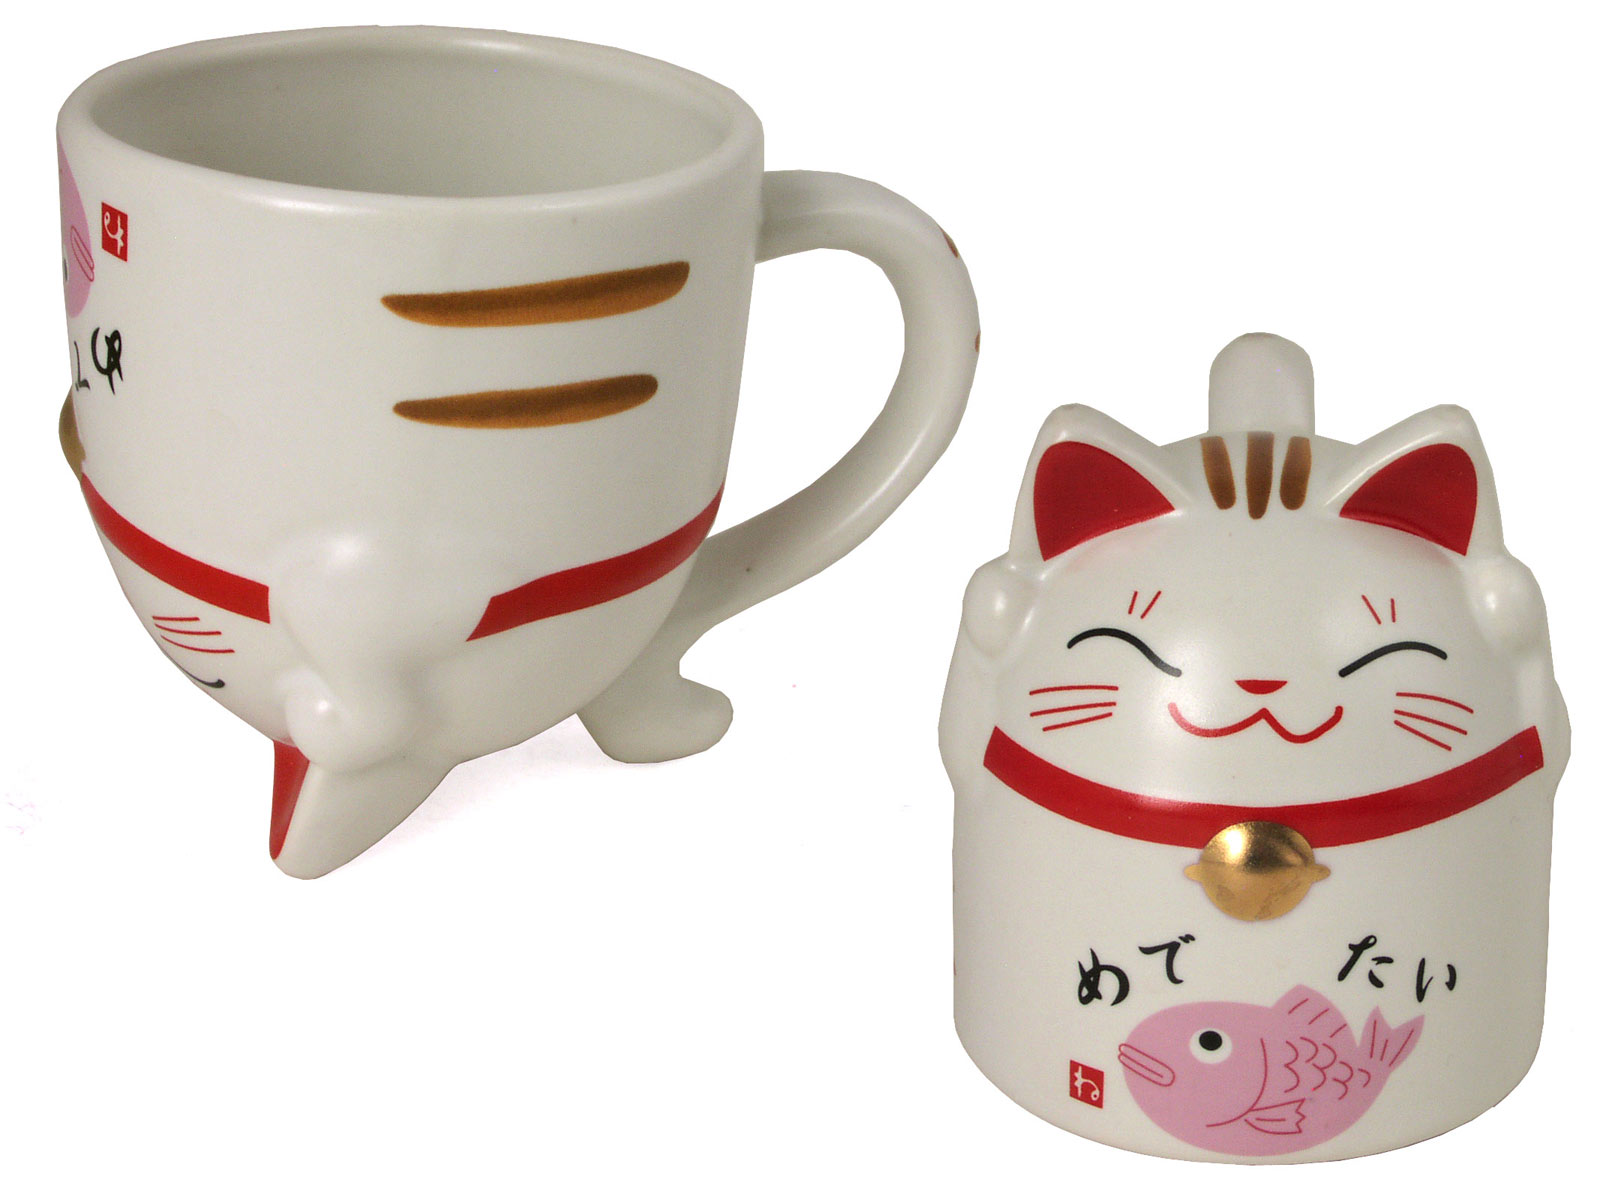 Adorable Maneki Neko Ceramic Coffee Mug - photo#43